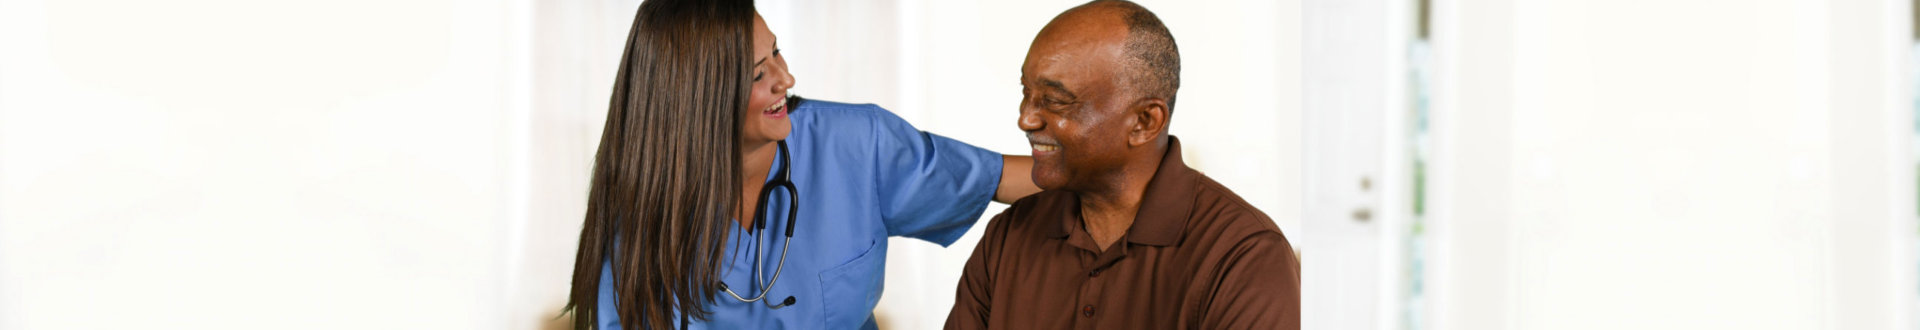 senior man and female caregiver are looking at each other while smiling